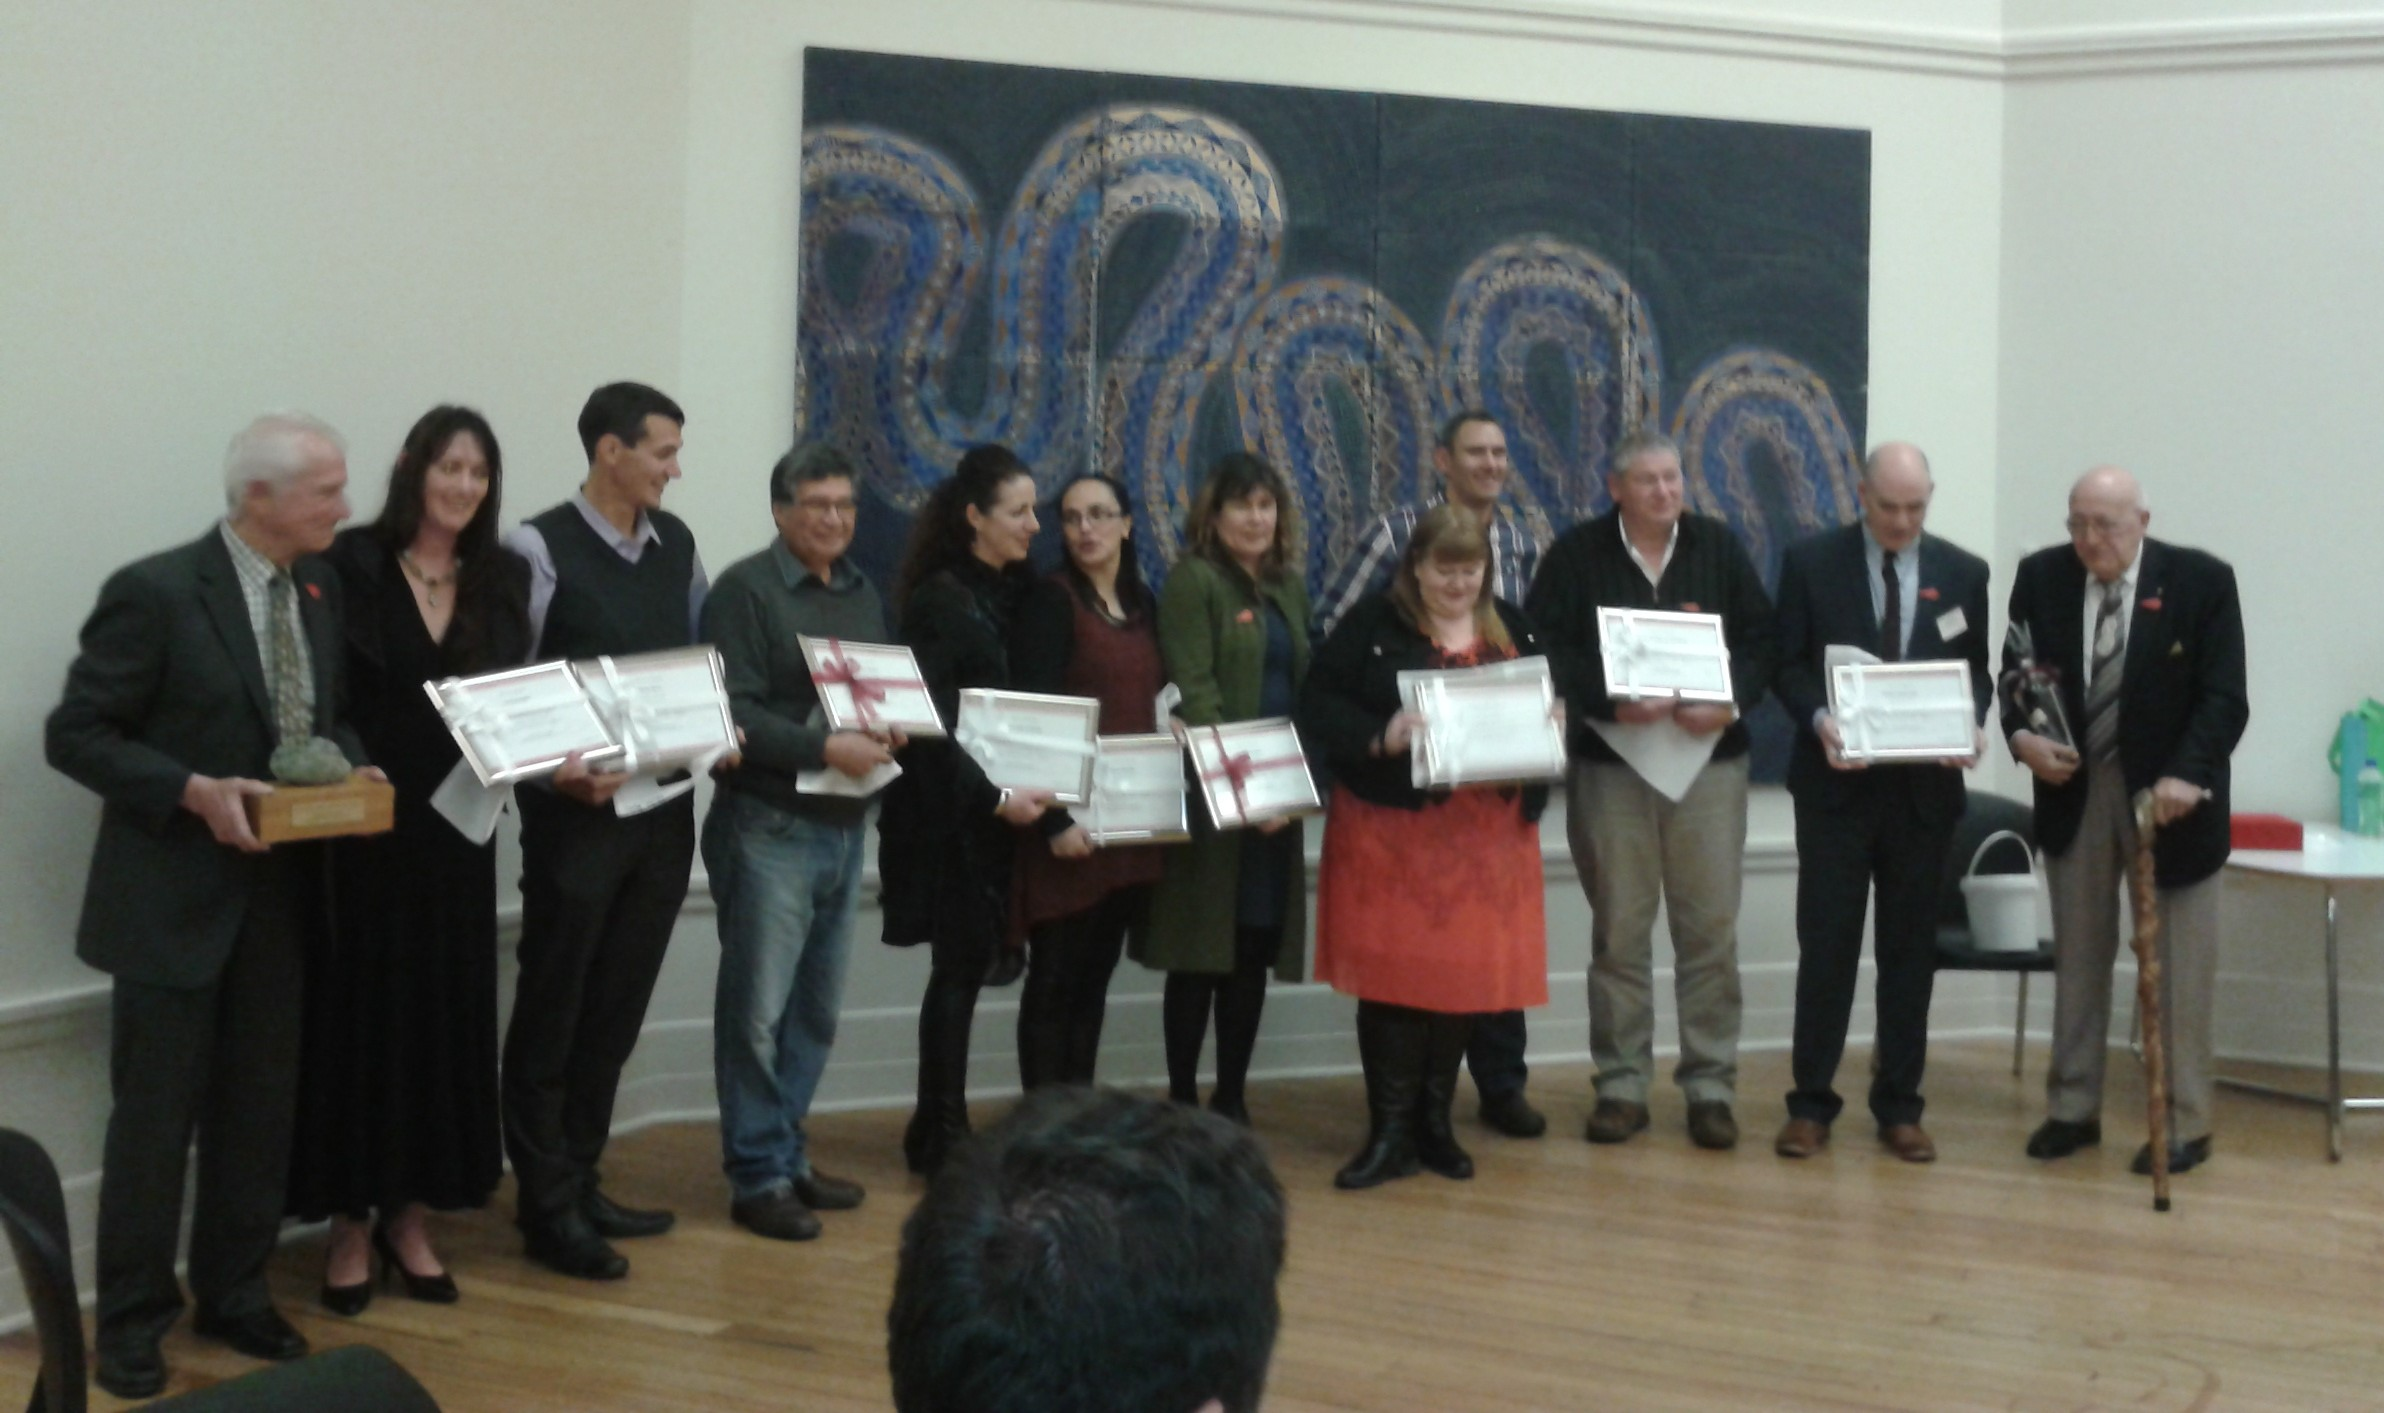 Phil Broughton, Rebecca Williams and Janine Kapa receiving (with others) 10 year participation certificates at the receive KUMA hui in Dunedin.